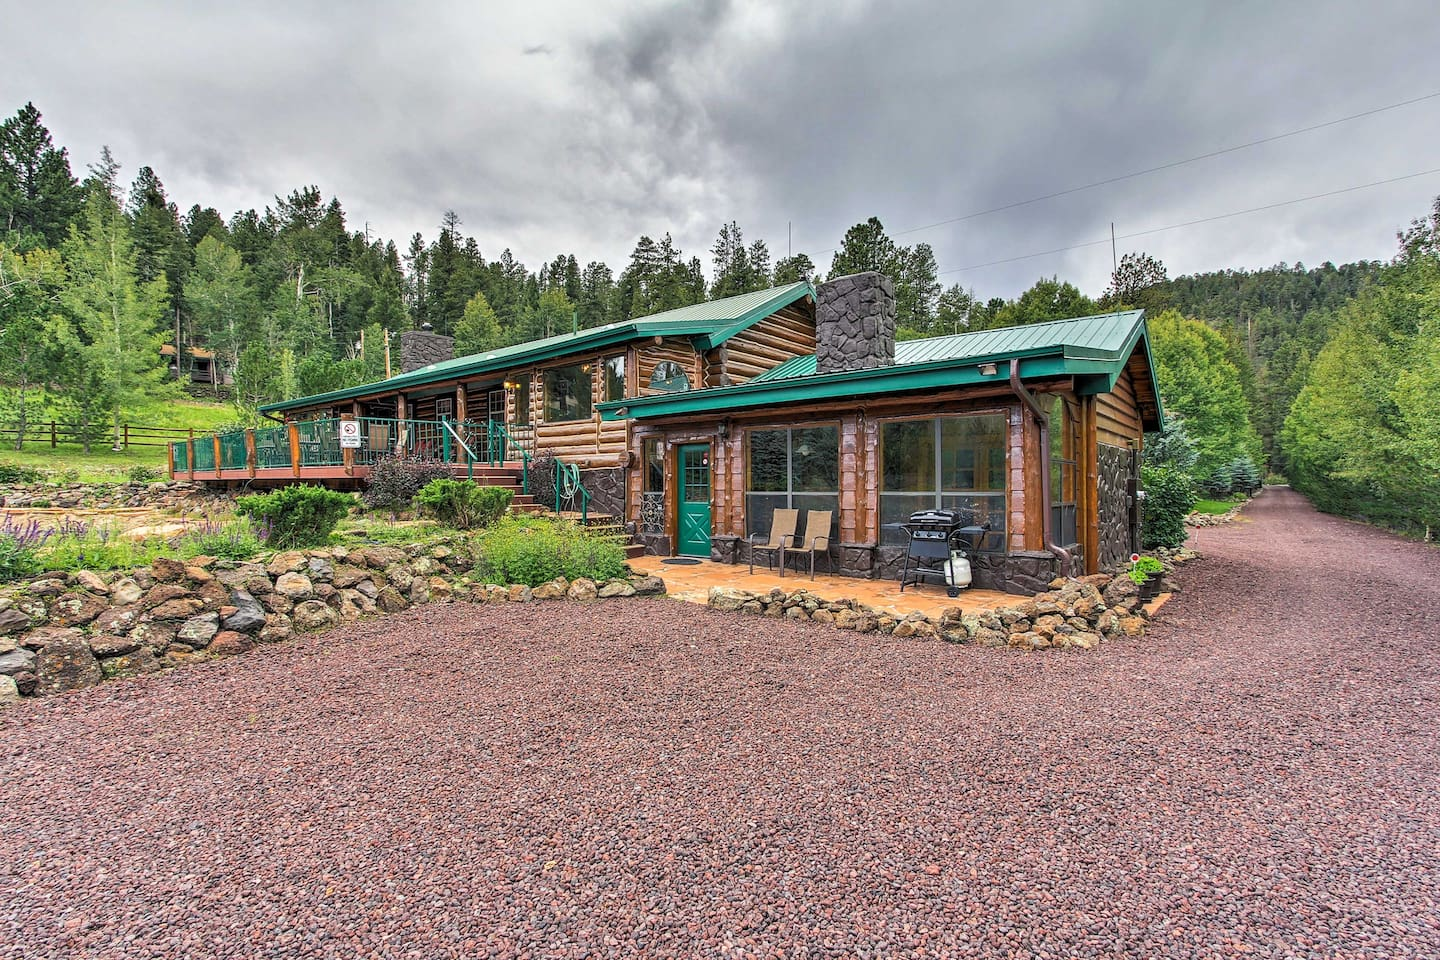 This vacation rental cabin has 2 bedrooms, 1 bathroom, and can sleep 6.